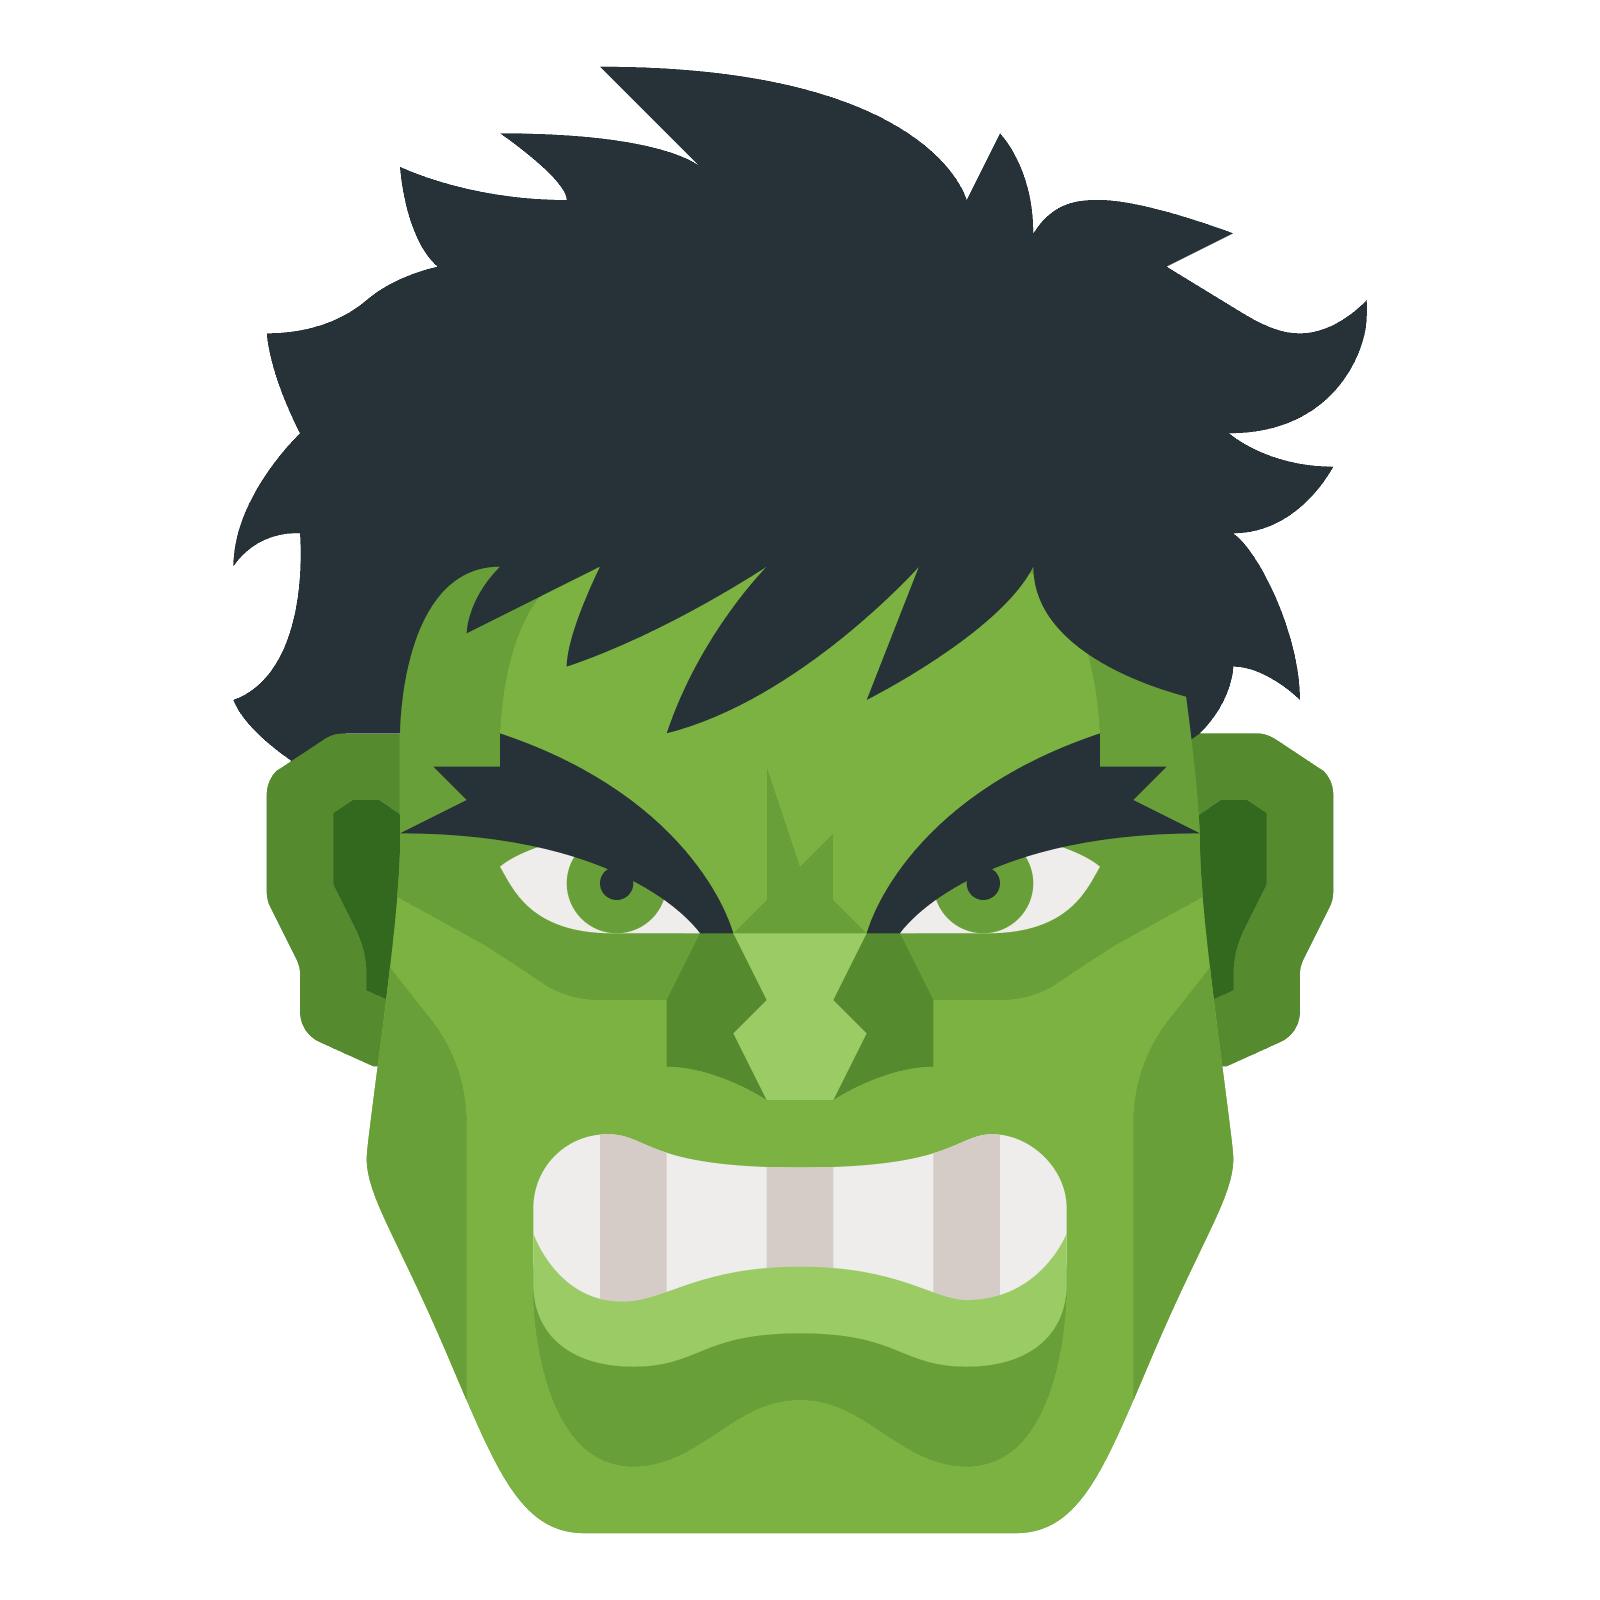 Hulk icon png. Free download and vector